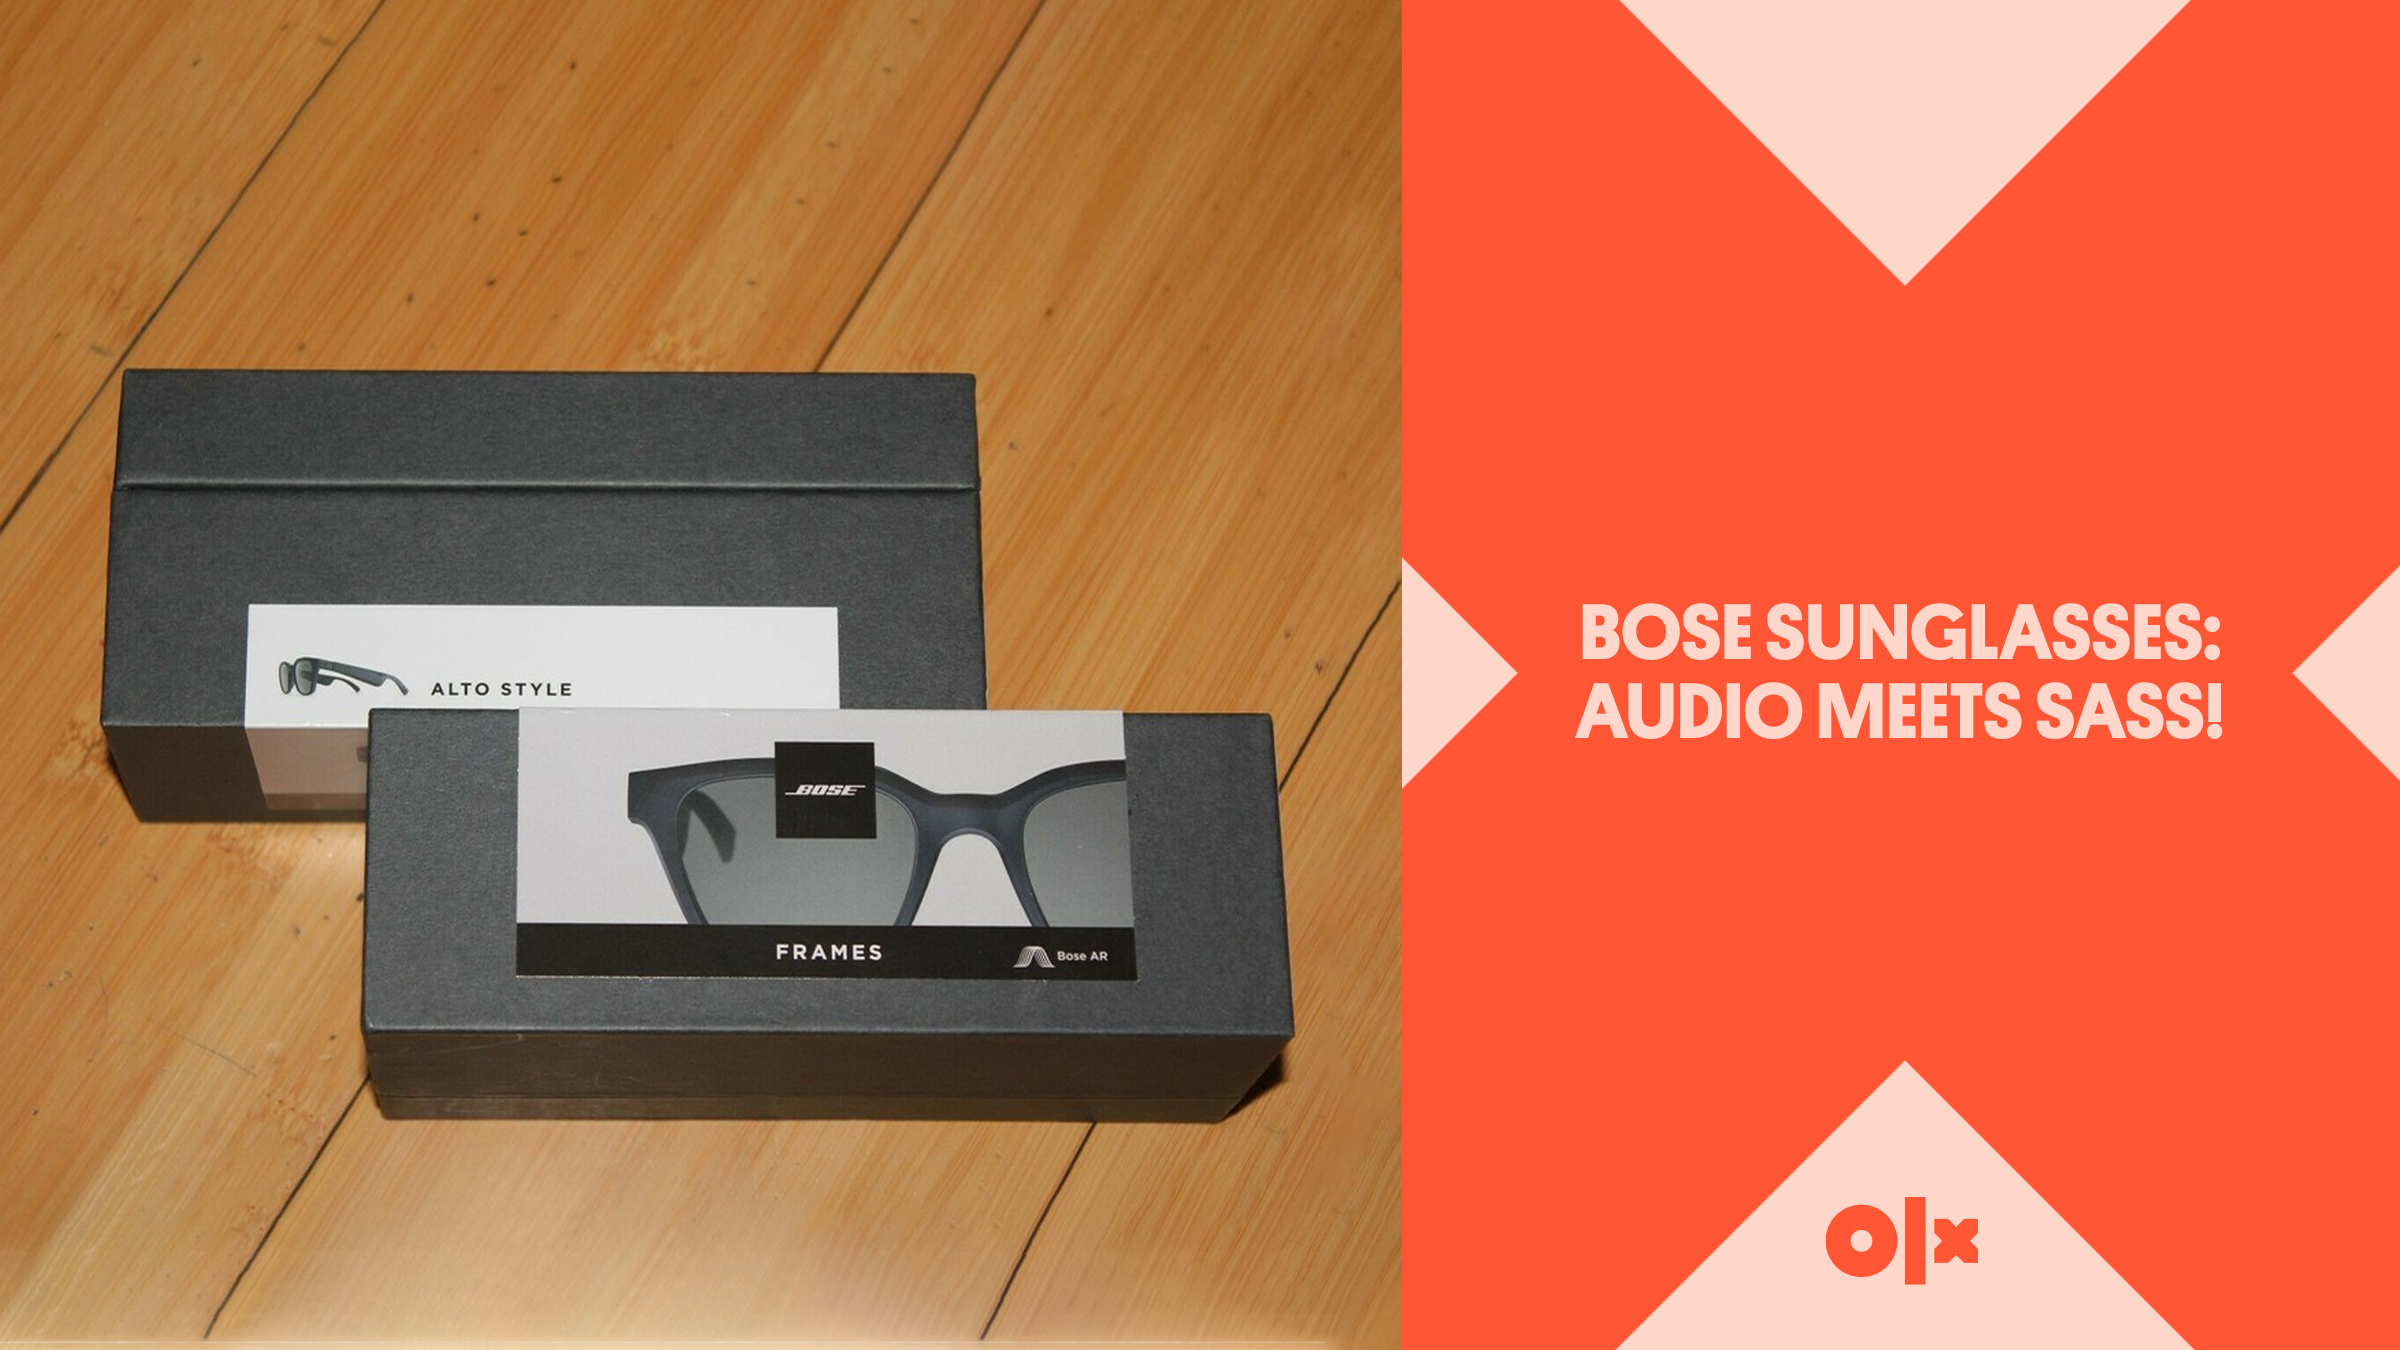 Bose Sunglasses: Audio Meets Sass!